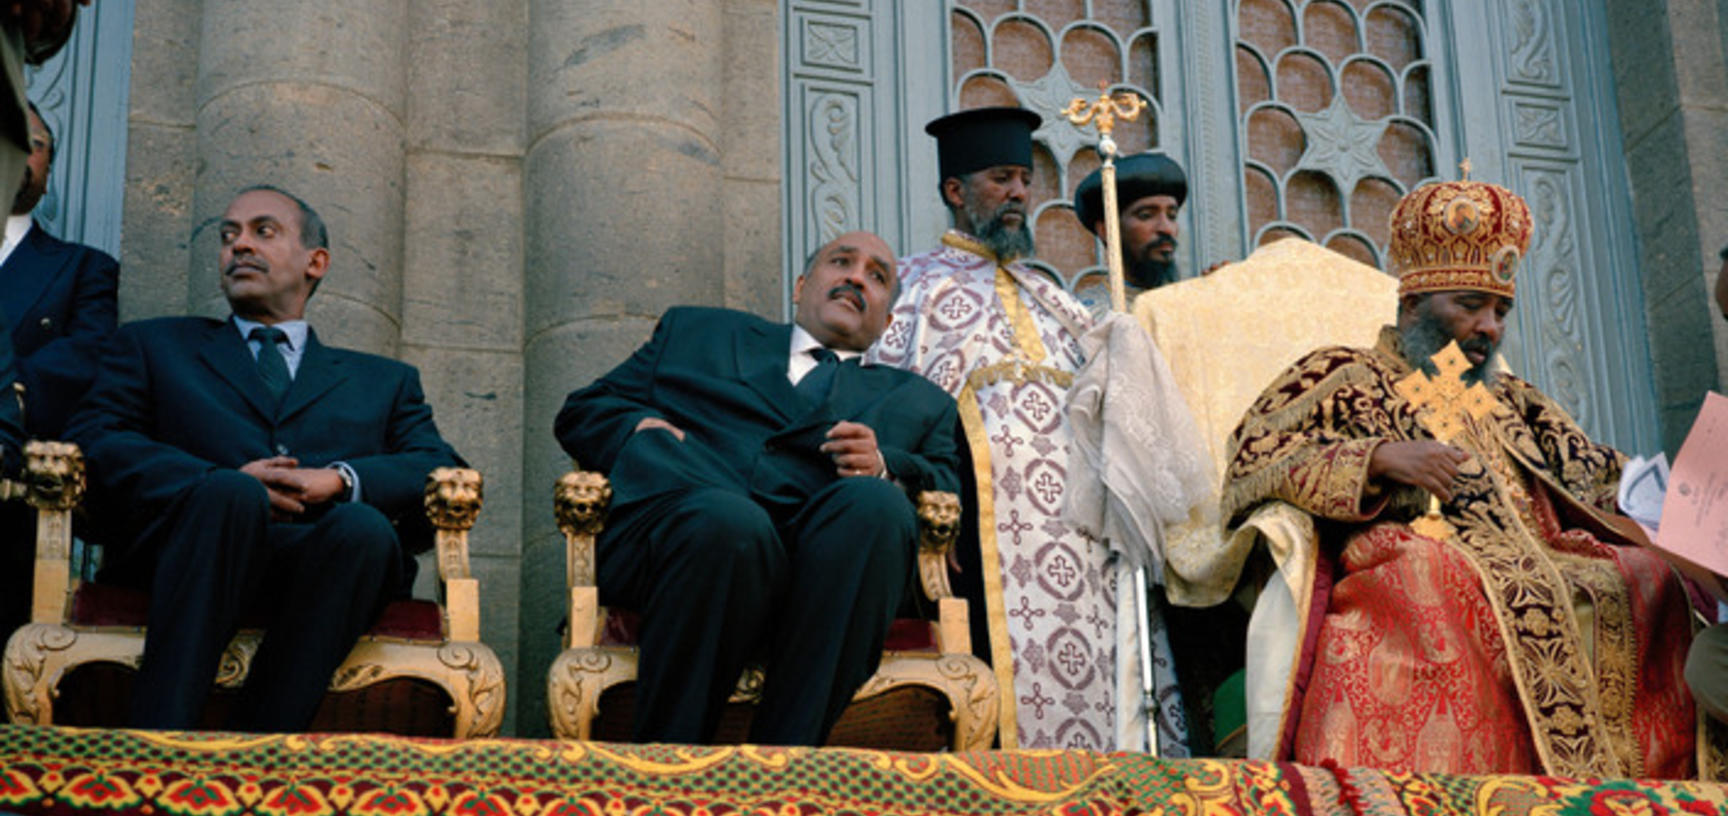 Descendants of the Emperor on the steps of Trinity Cathedral. Addis Ababa, Ethiopia. Photograph by Peter Marlow. 2000.